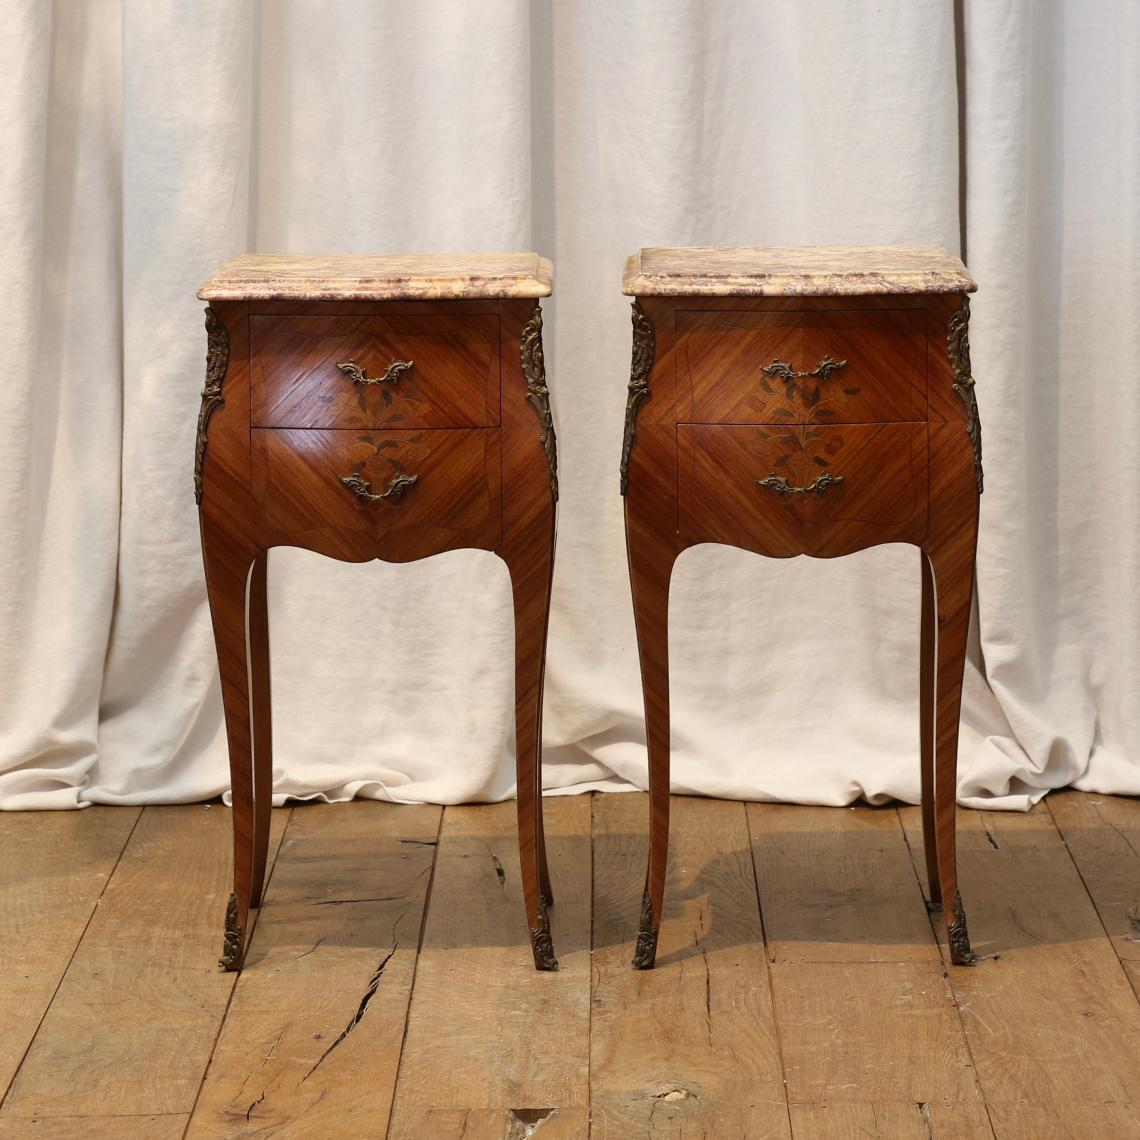 111-78 - Louis XV Bedside Tables